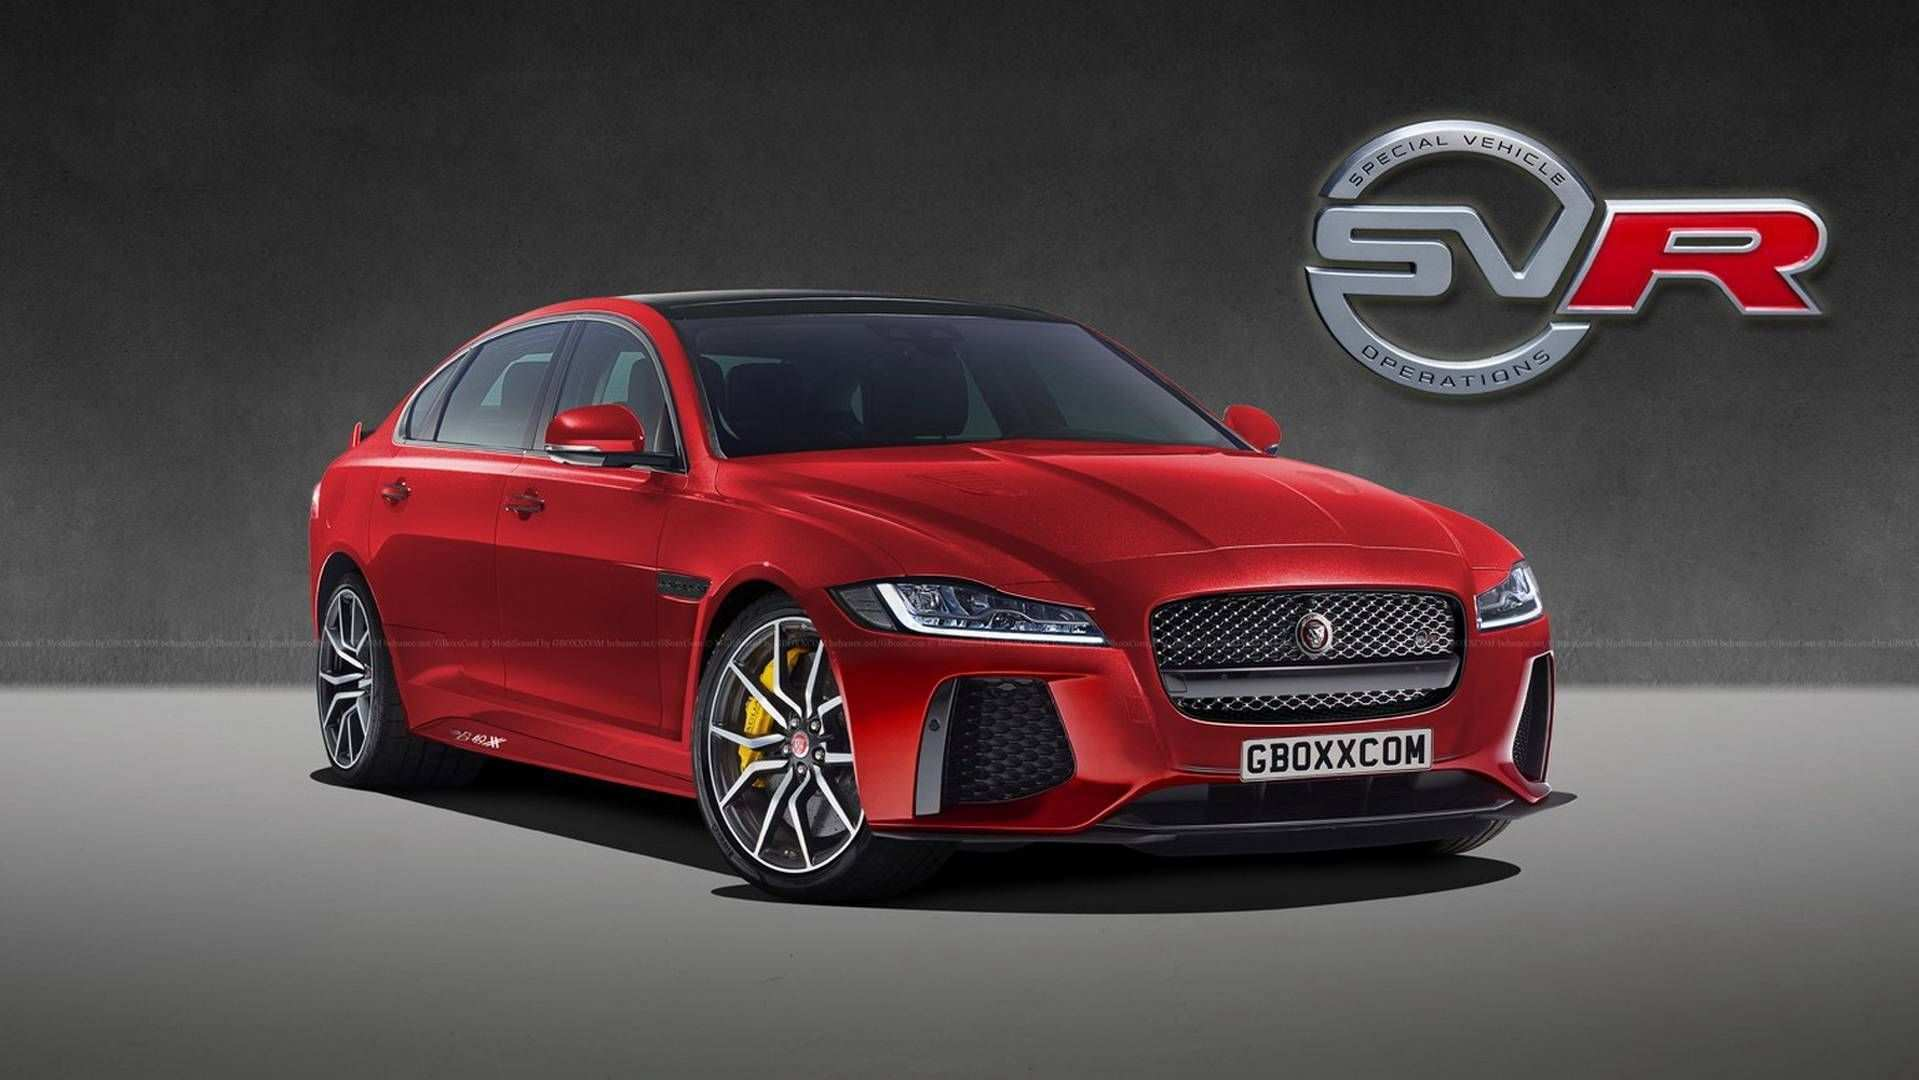 39 Gallery of Jaguar Xf 2020 New Concept Spy Shoot with Jaguar Xf 2020 New Concept